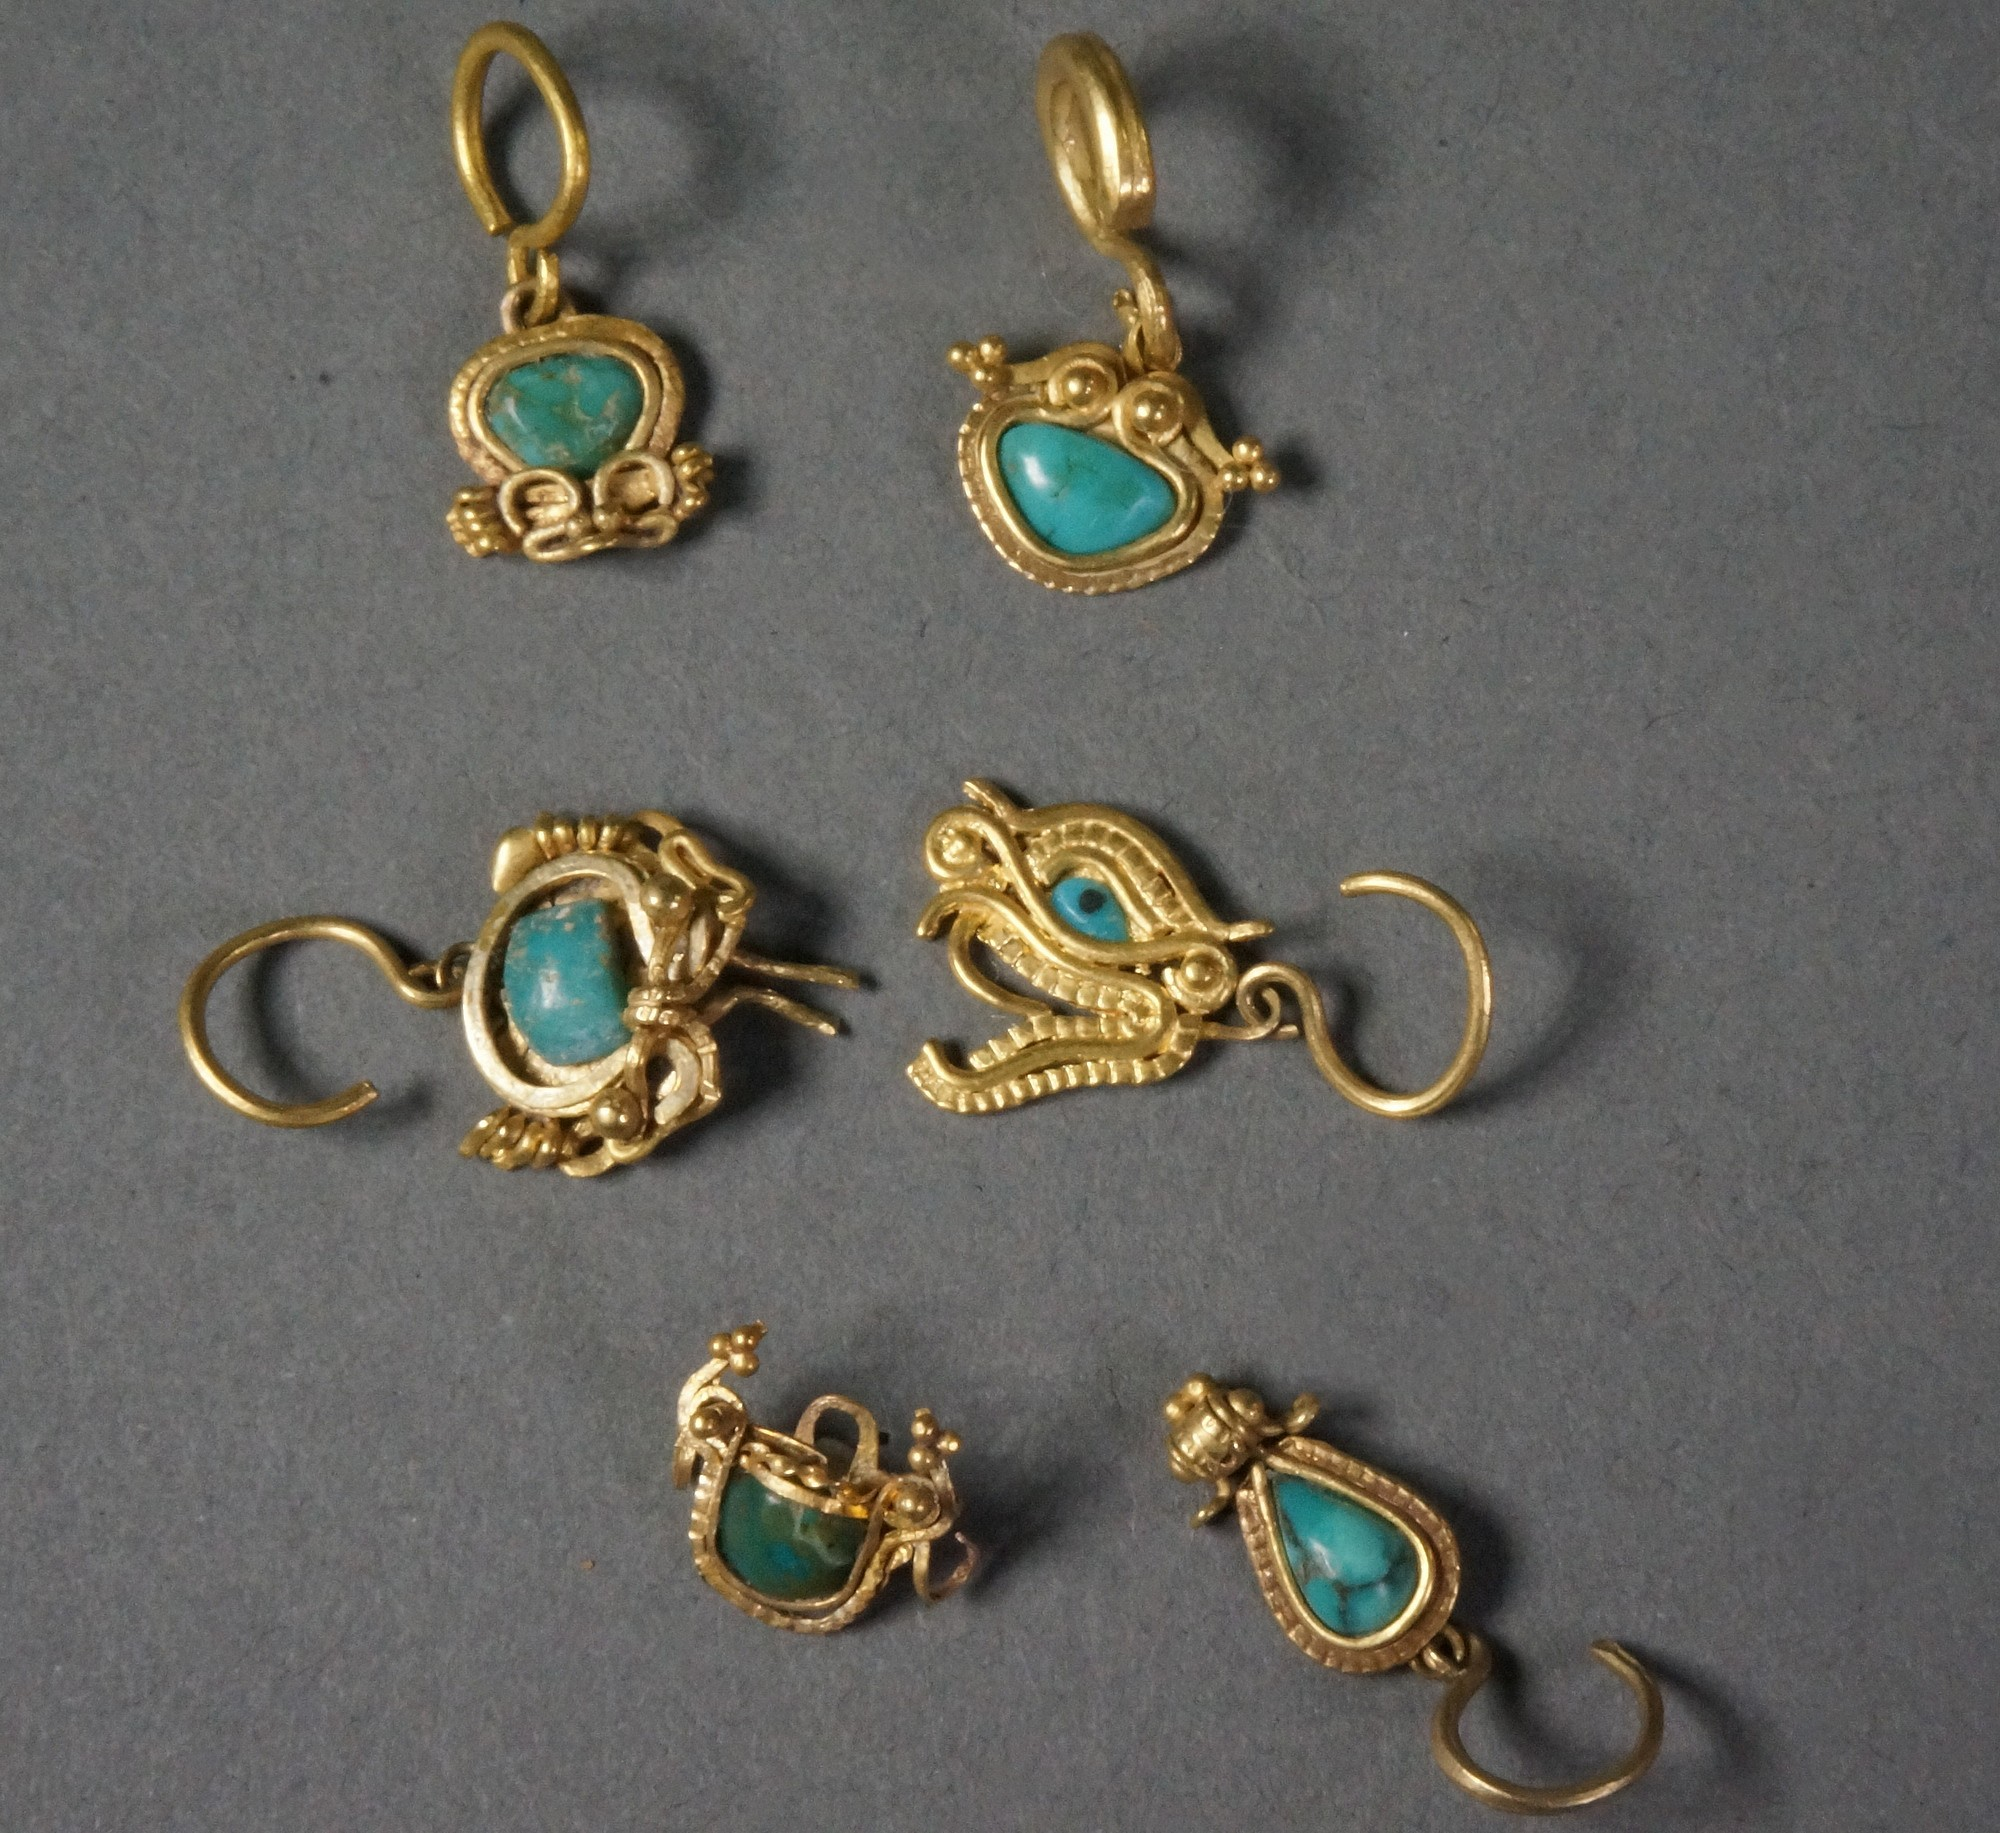 Ecuador, Six La Tolita Gold with Platinium Miniature Ear Ornaments with Turquoise Metal